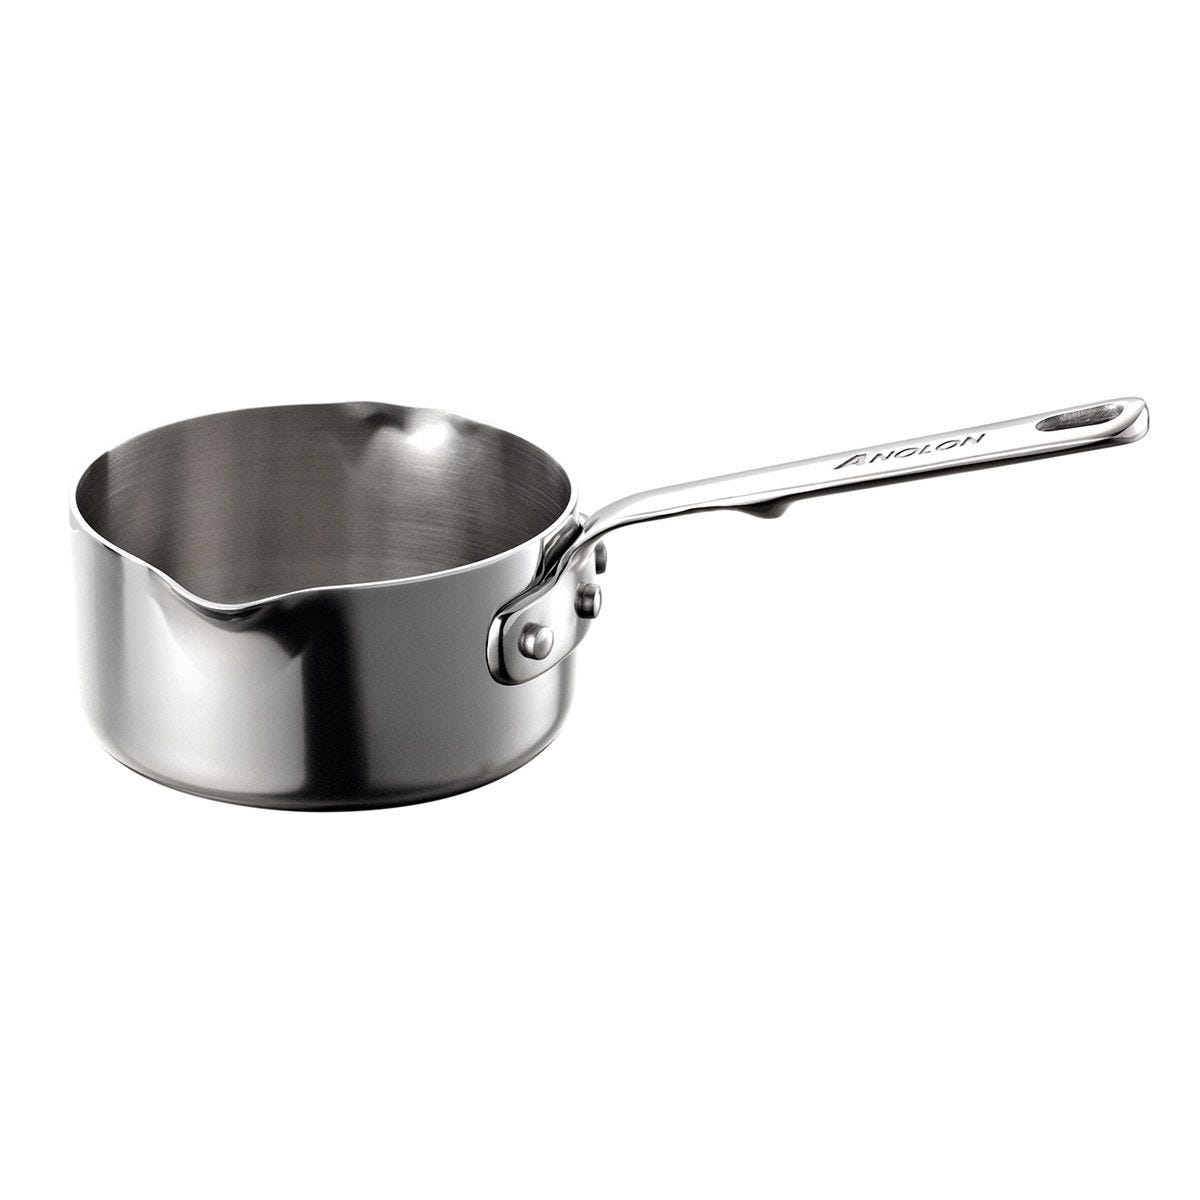 Anolon Tri Ply 14cm Milkpan - Stainless Steel